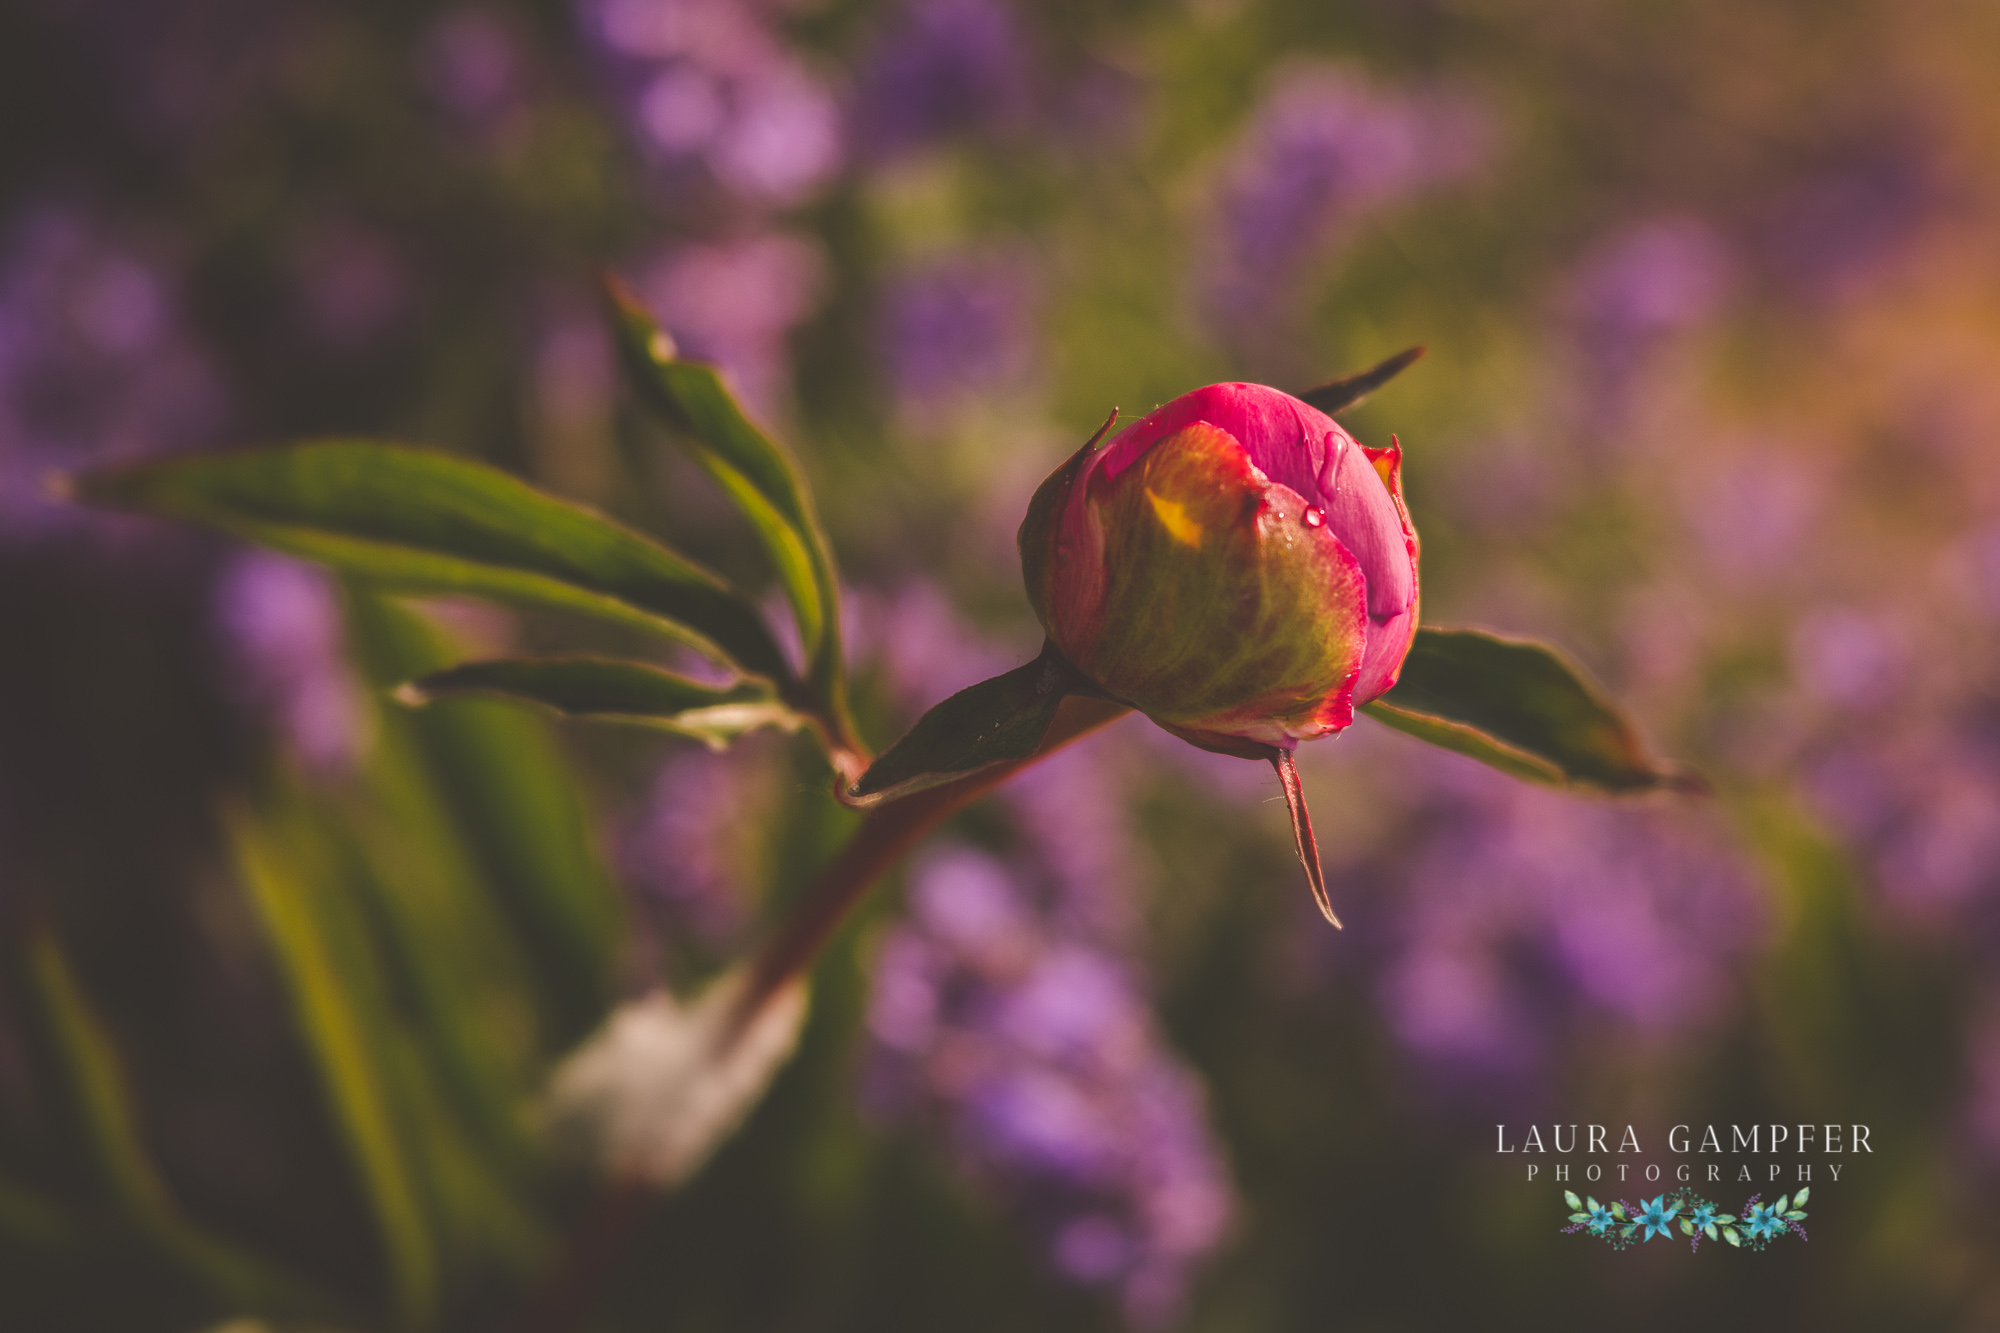 floral photography laura gampfer